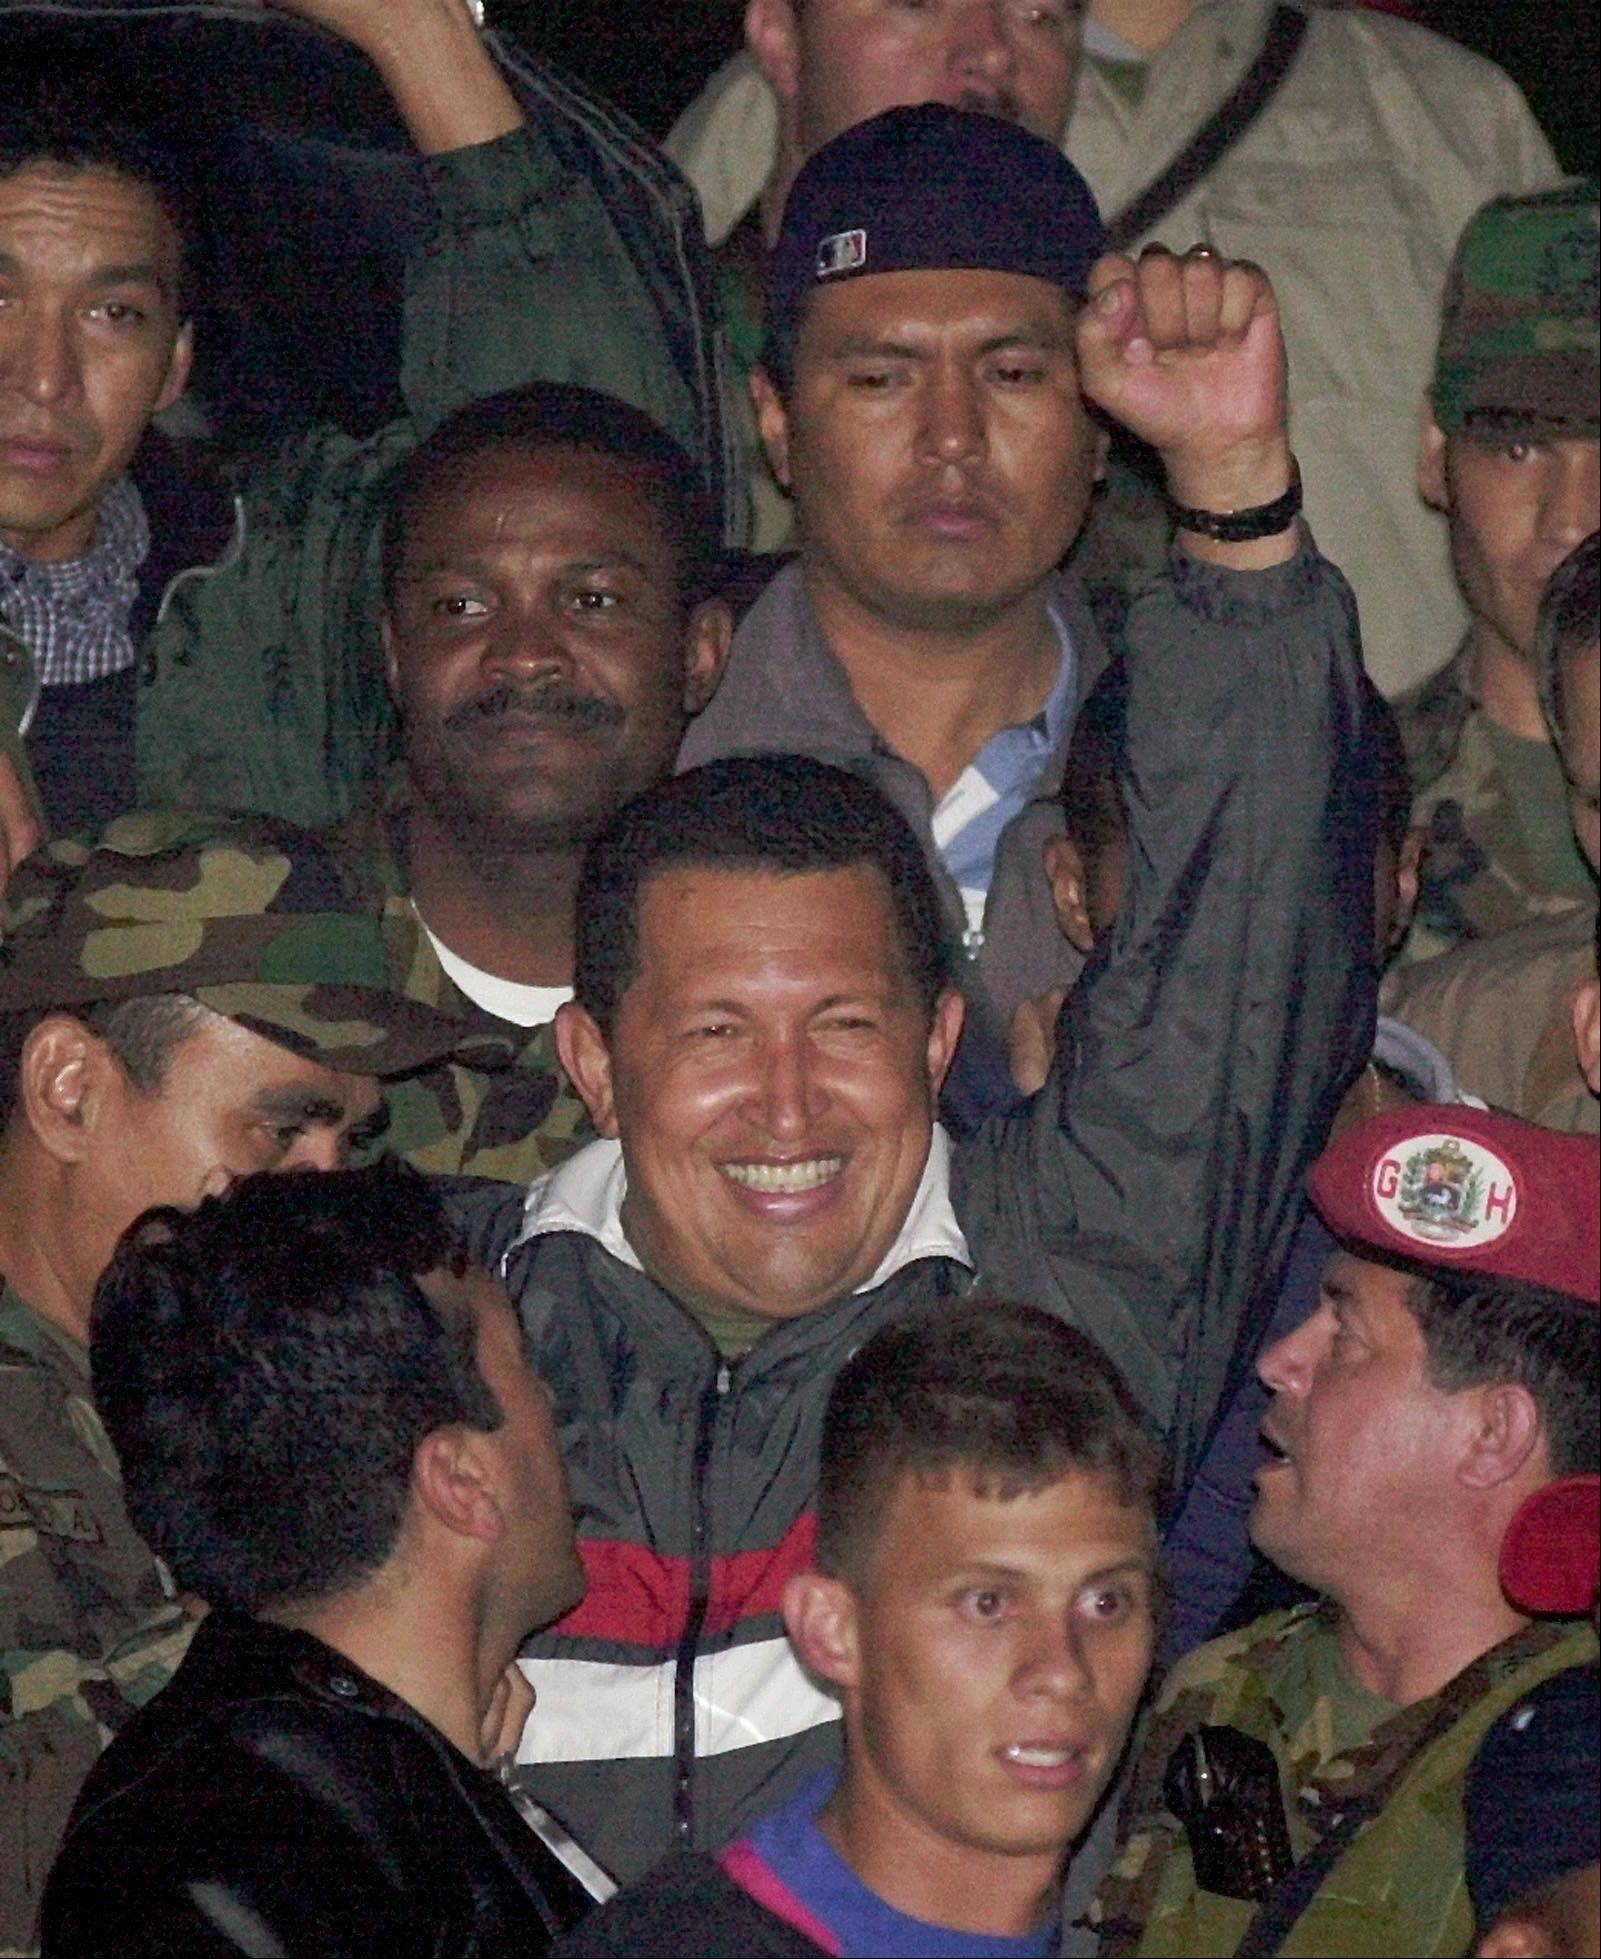 In this April 14, 2002 file photo, Venezuela's President Hugo Chavez gestures to supporters as he arrives to Miraflores presidential palace after being freed by his military captors two days after the military announced he had resigned in Caracas, Venezuela.